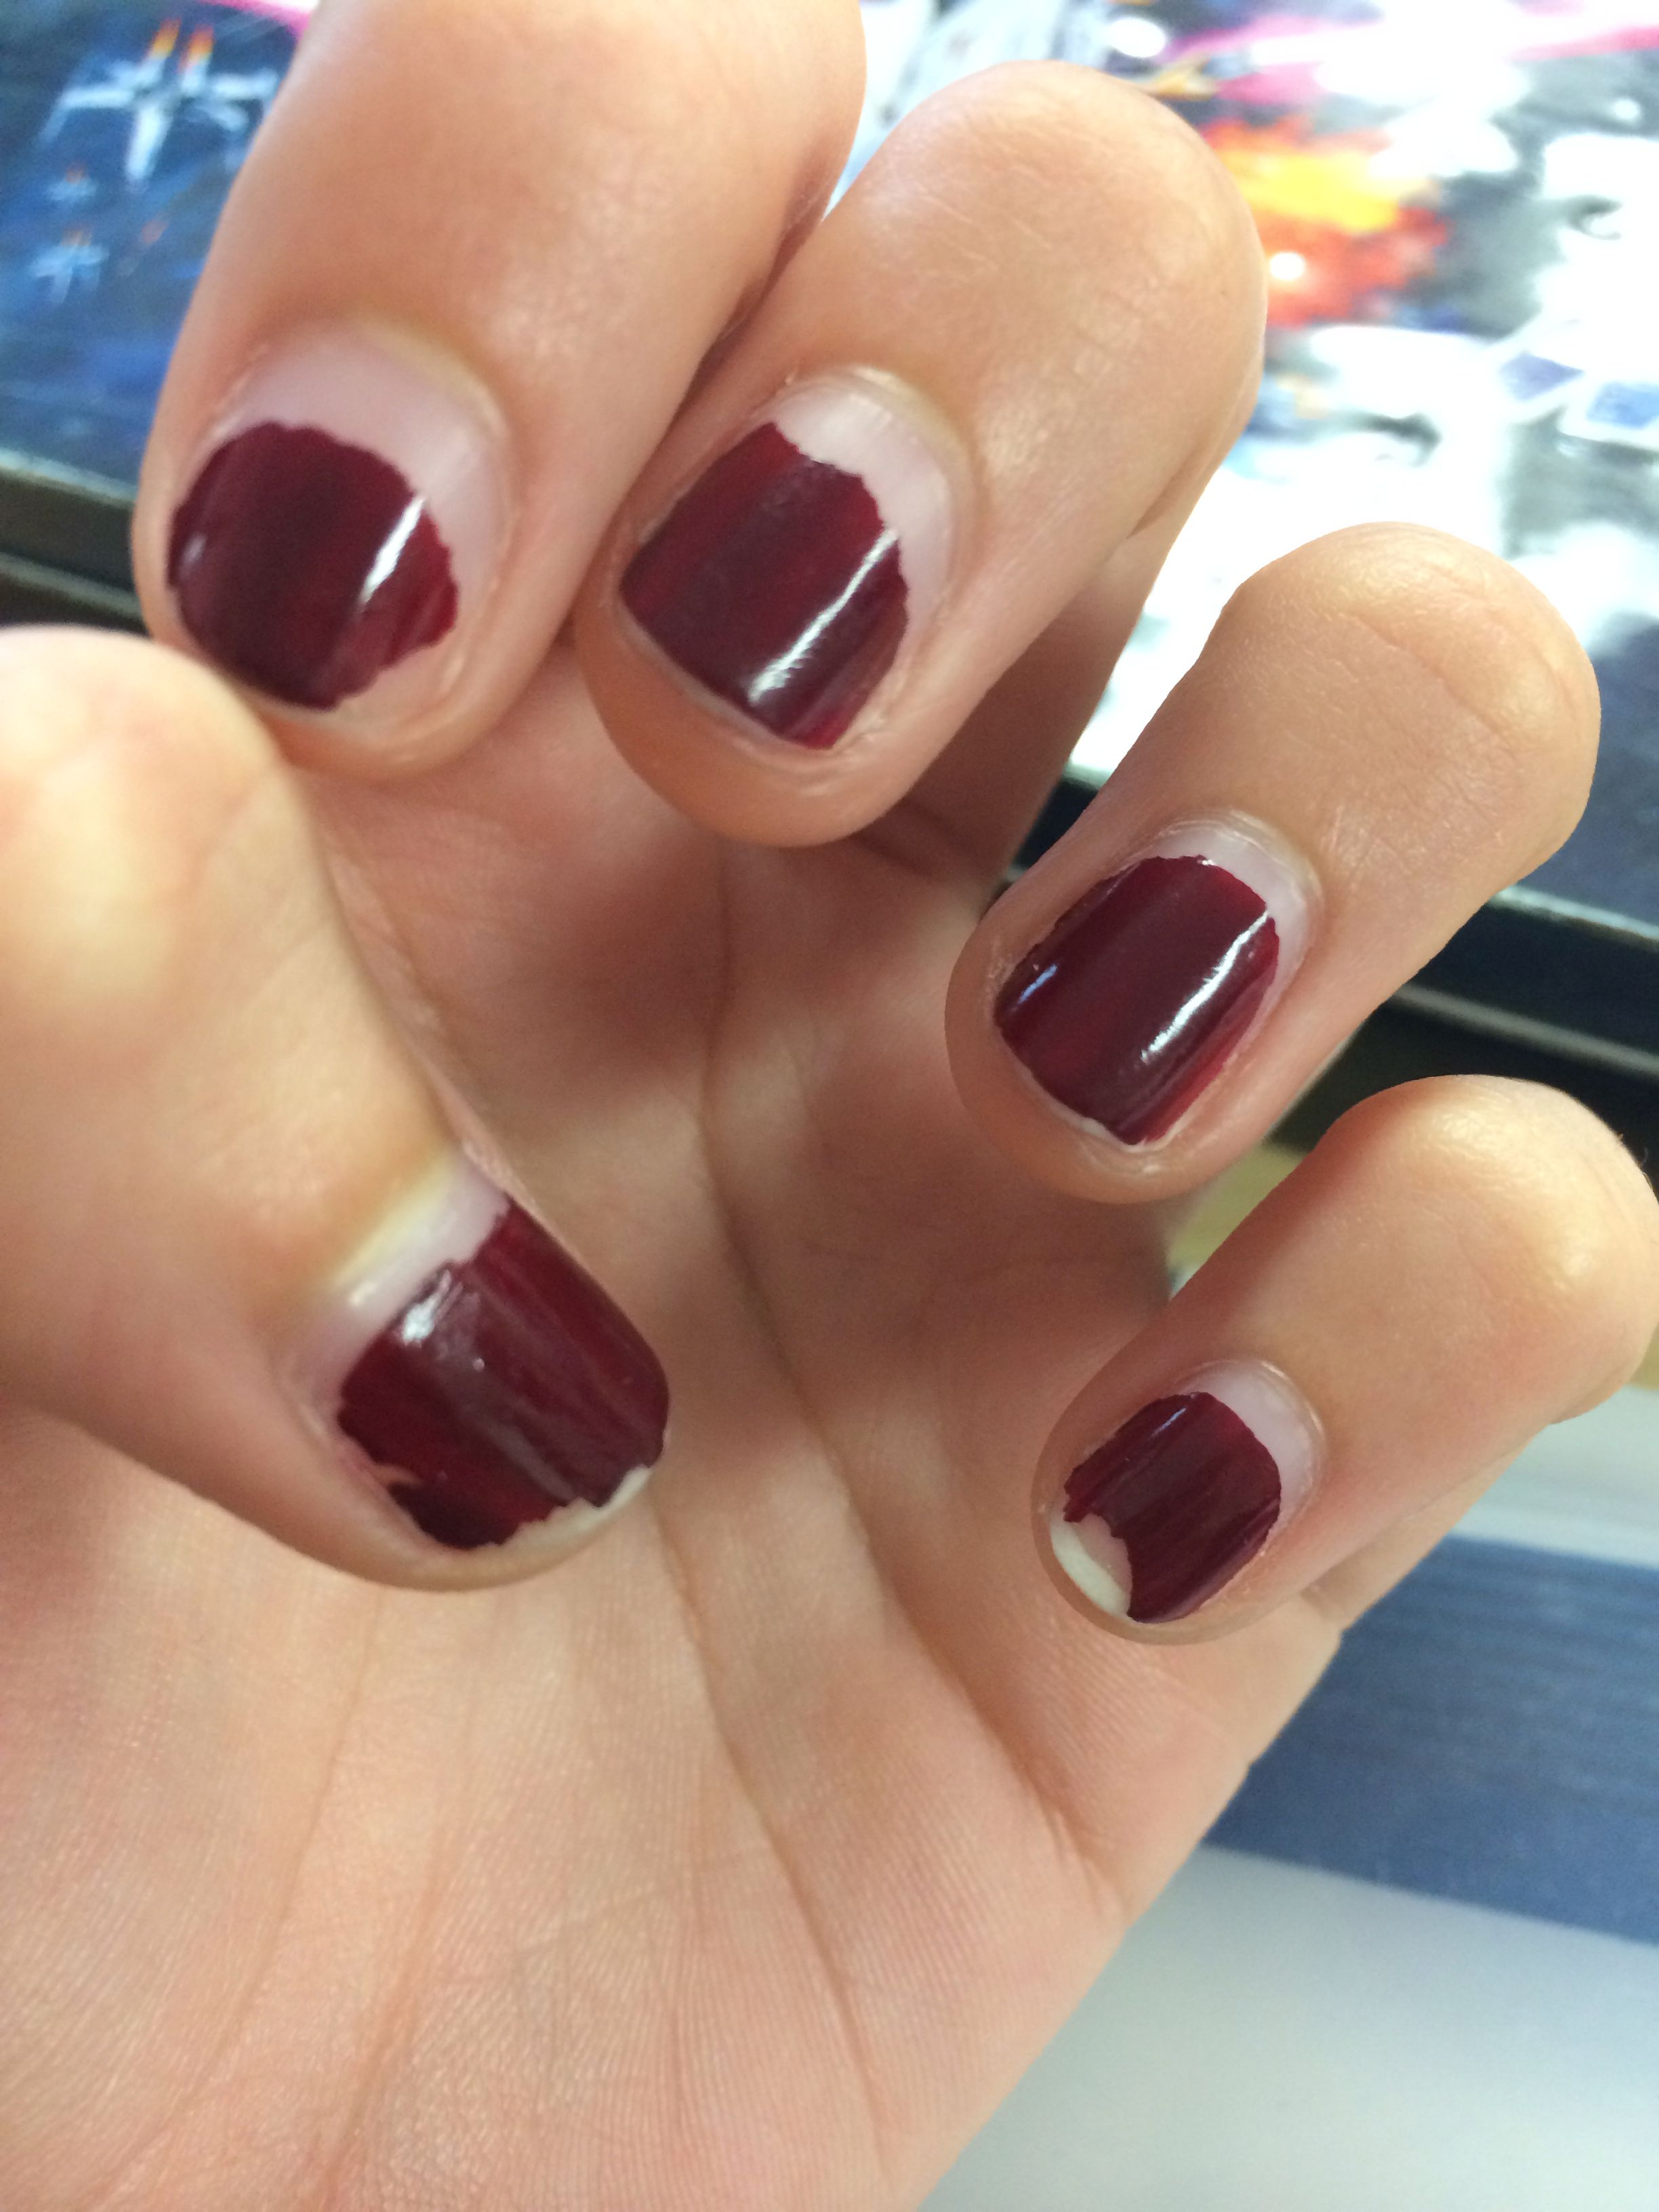 how to fix a chipped shellac nail at home